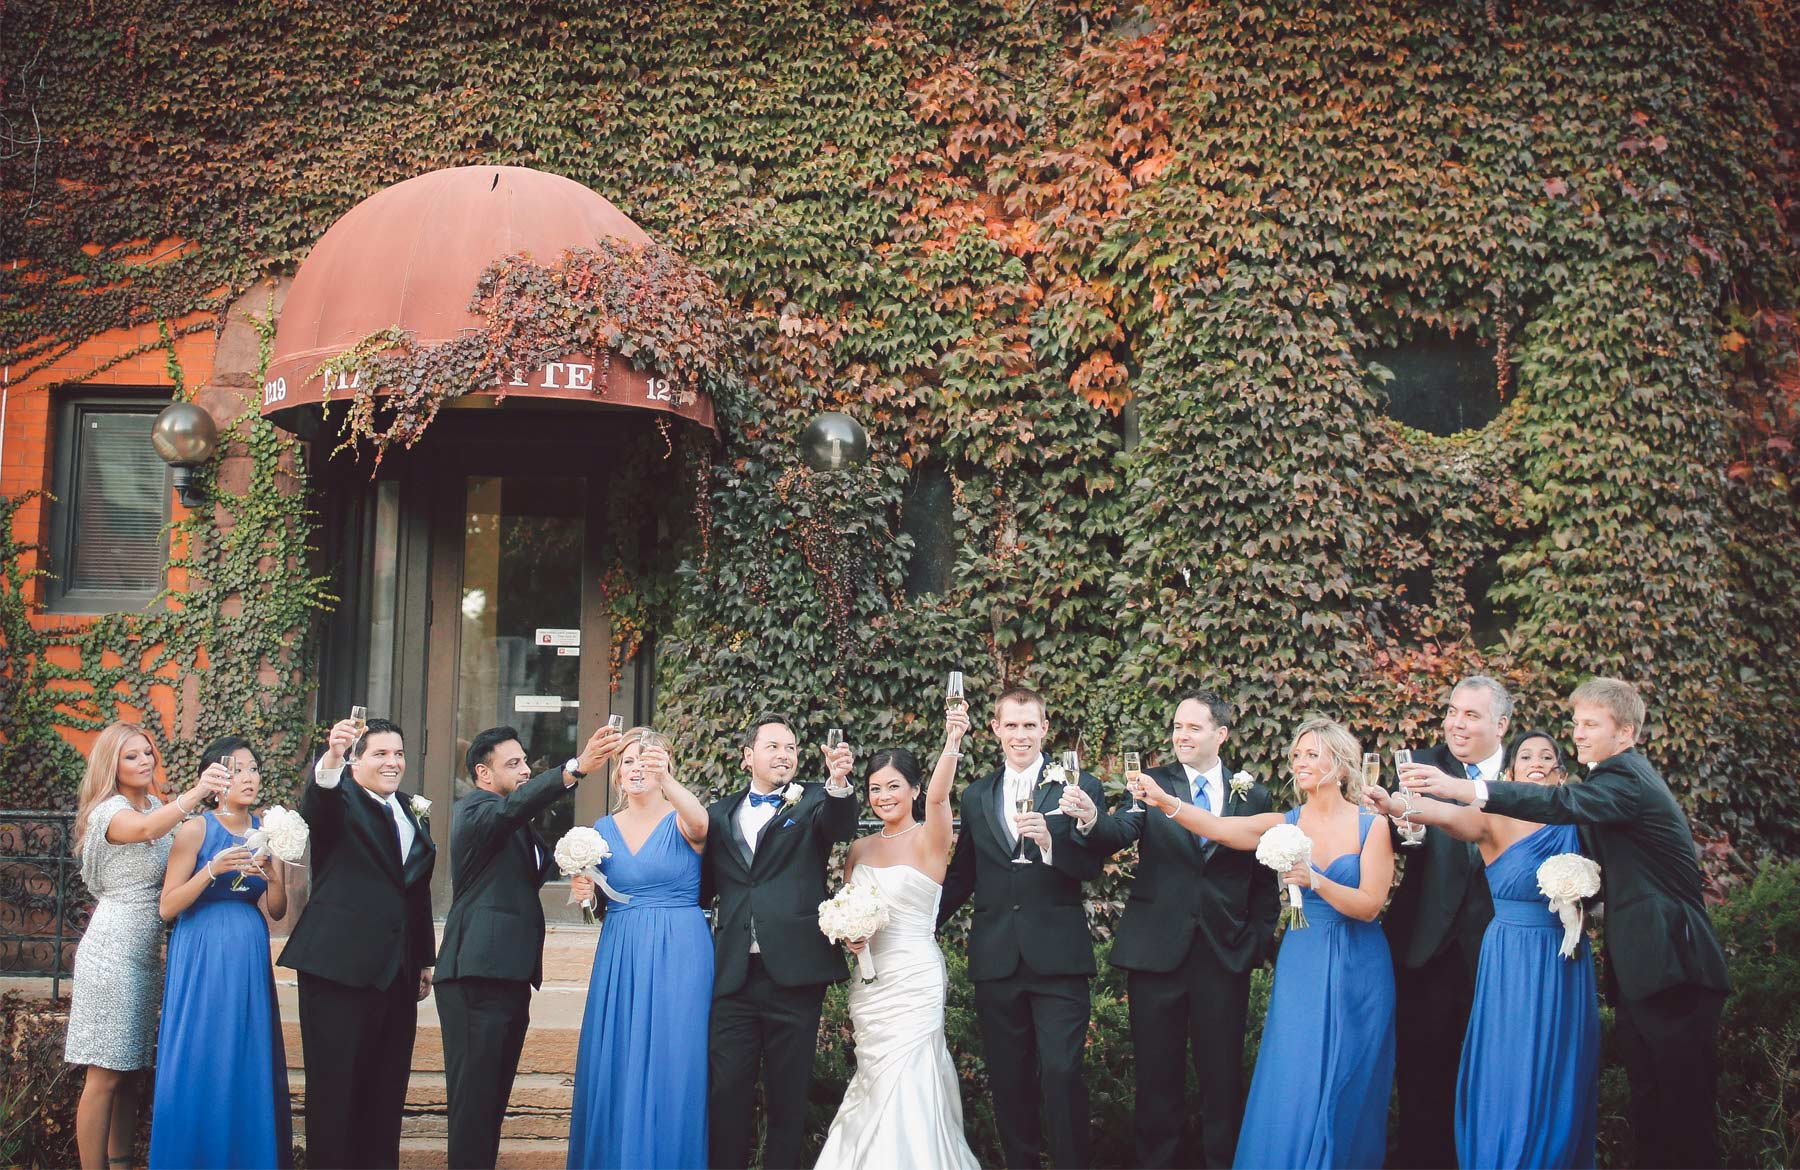 17-Minneapolis-Minnesota-Wedding-Photographer-by-Andrew-Vick-Photography-Fall-Autumn-Convention-Center-Bride-Groom-Bridal-Party-Bridesmaids-Groomsmen-Champagne-Vintage-Amanda-and-Cary.jpg